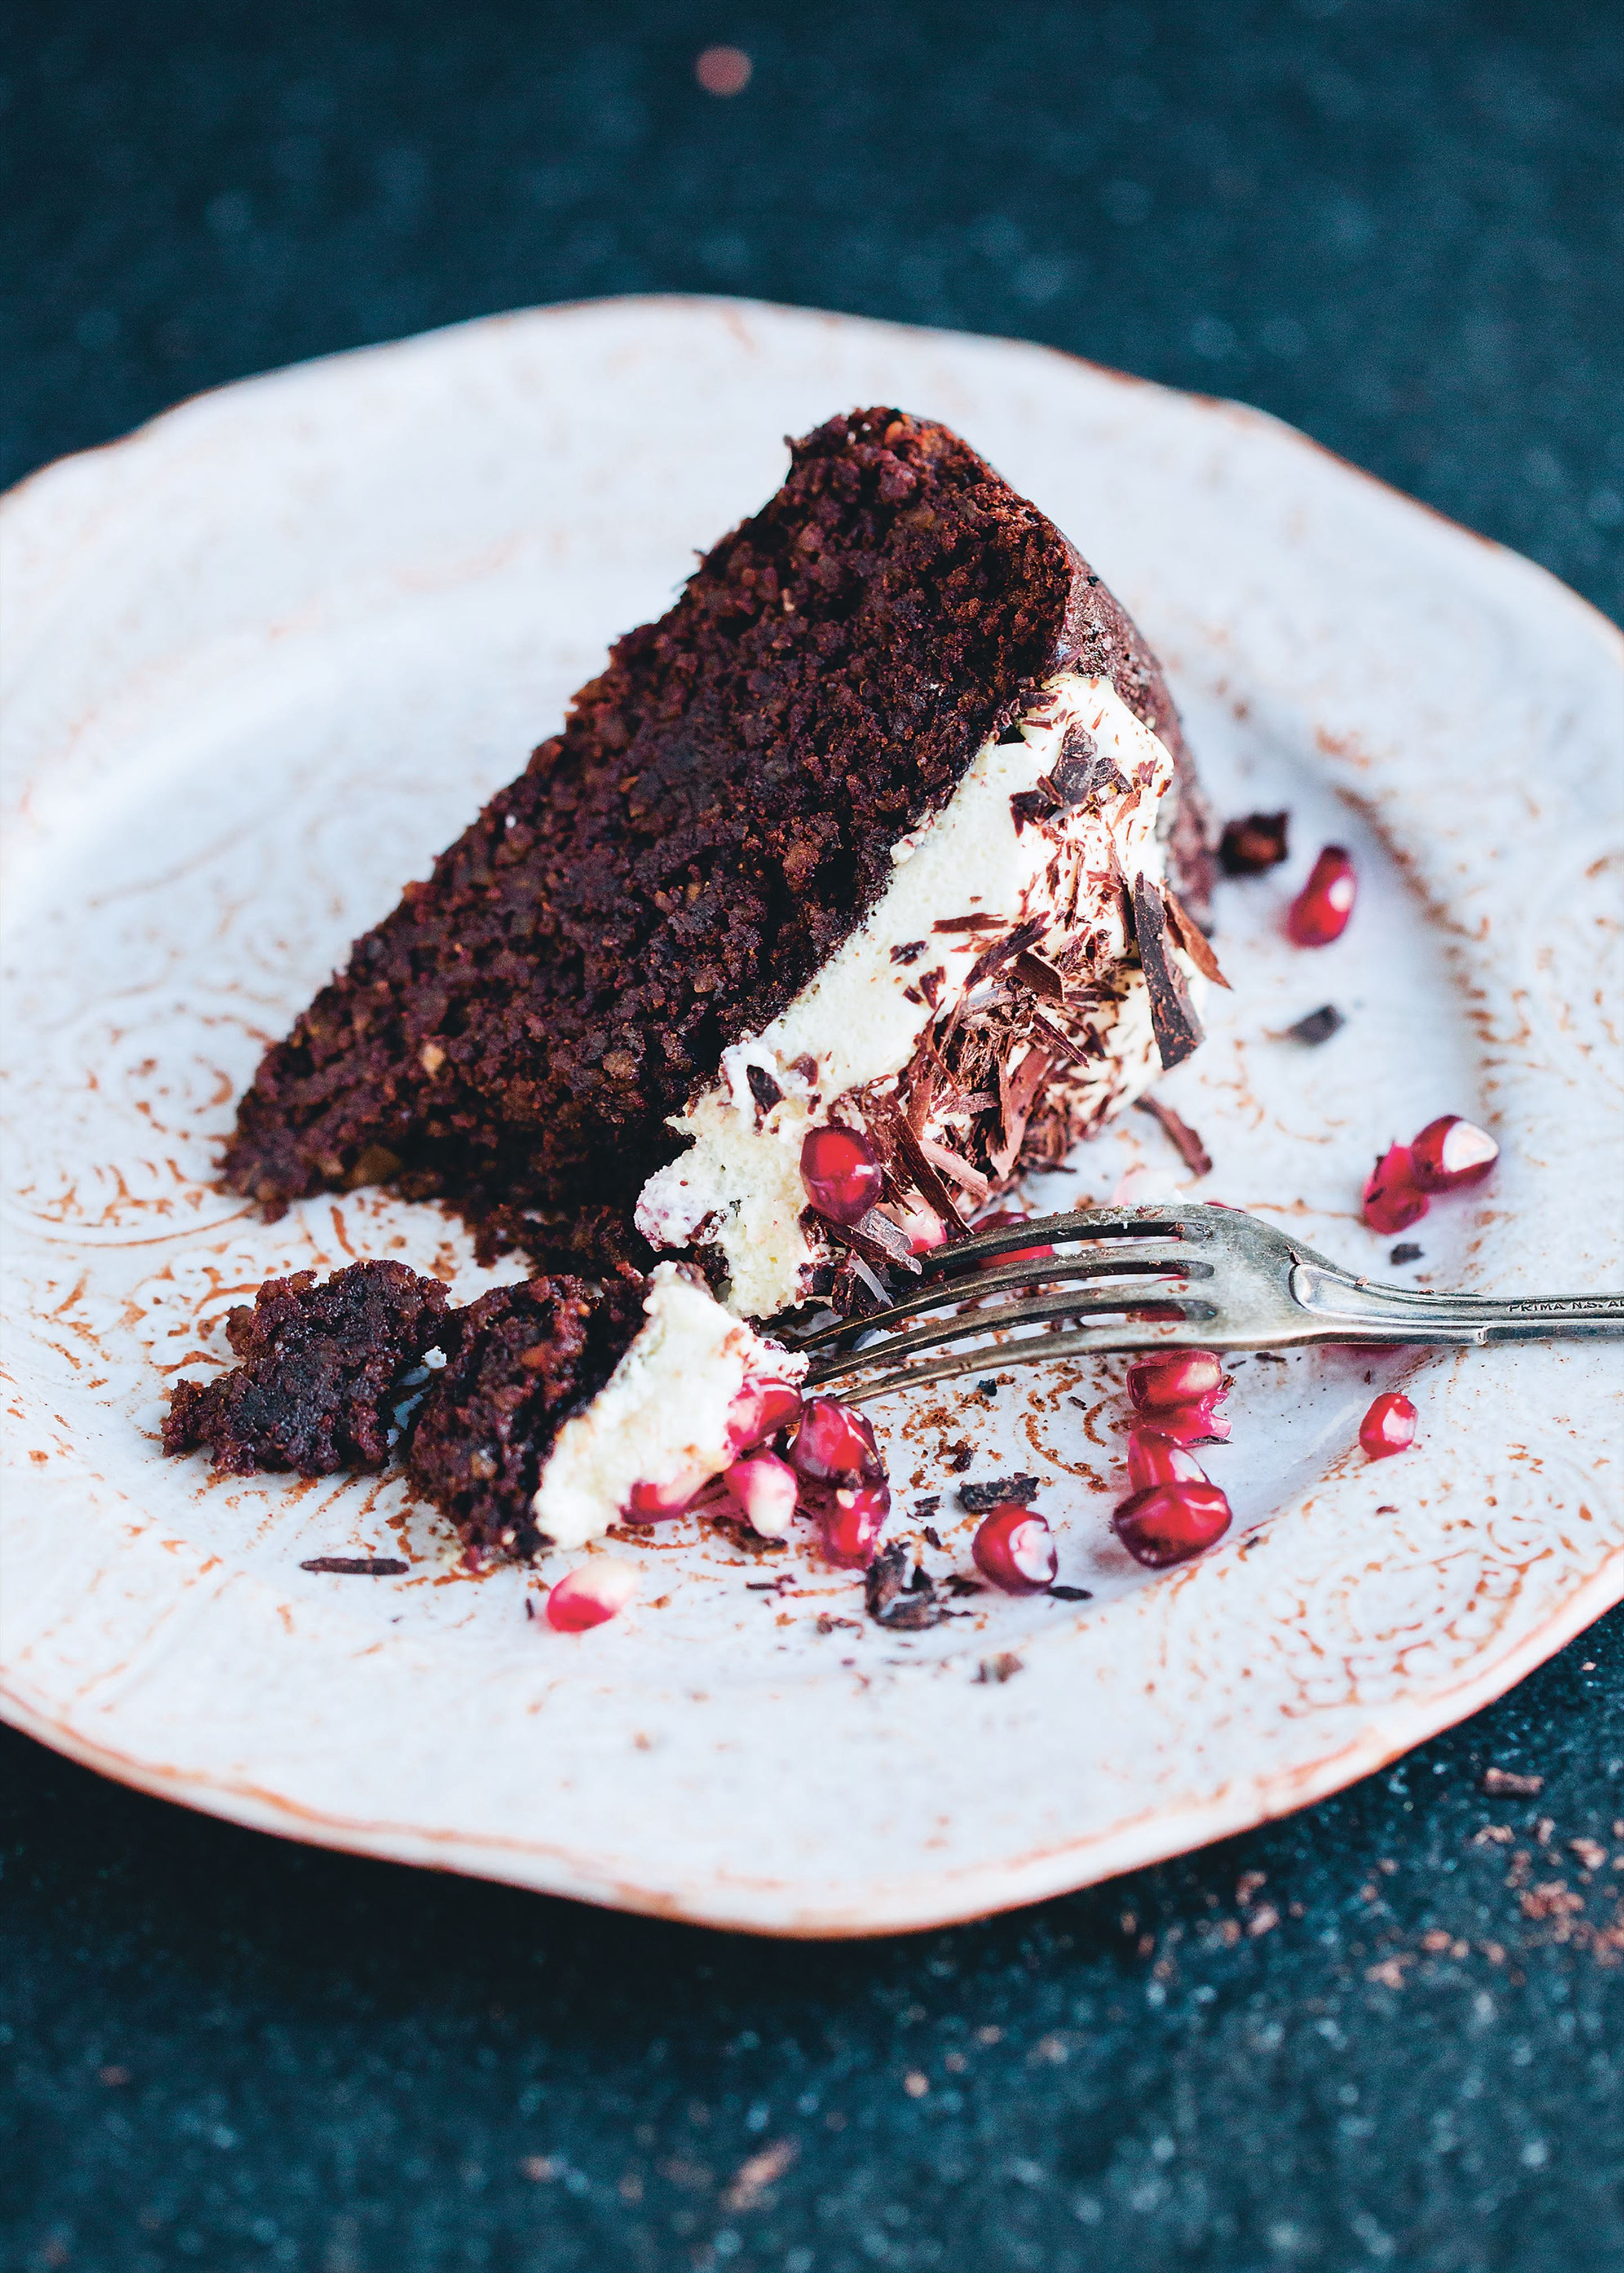 No-flour chocolate cake